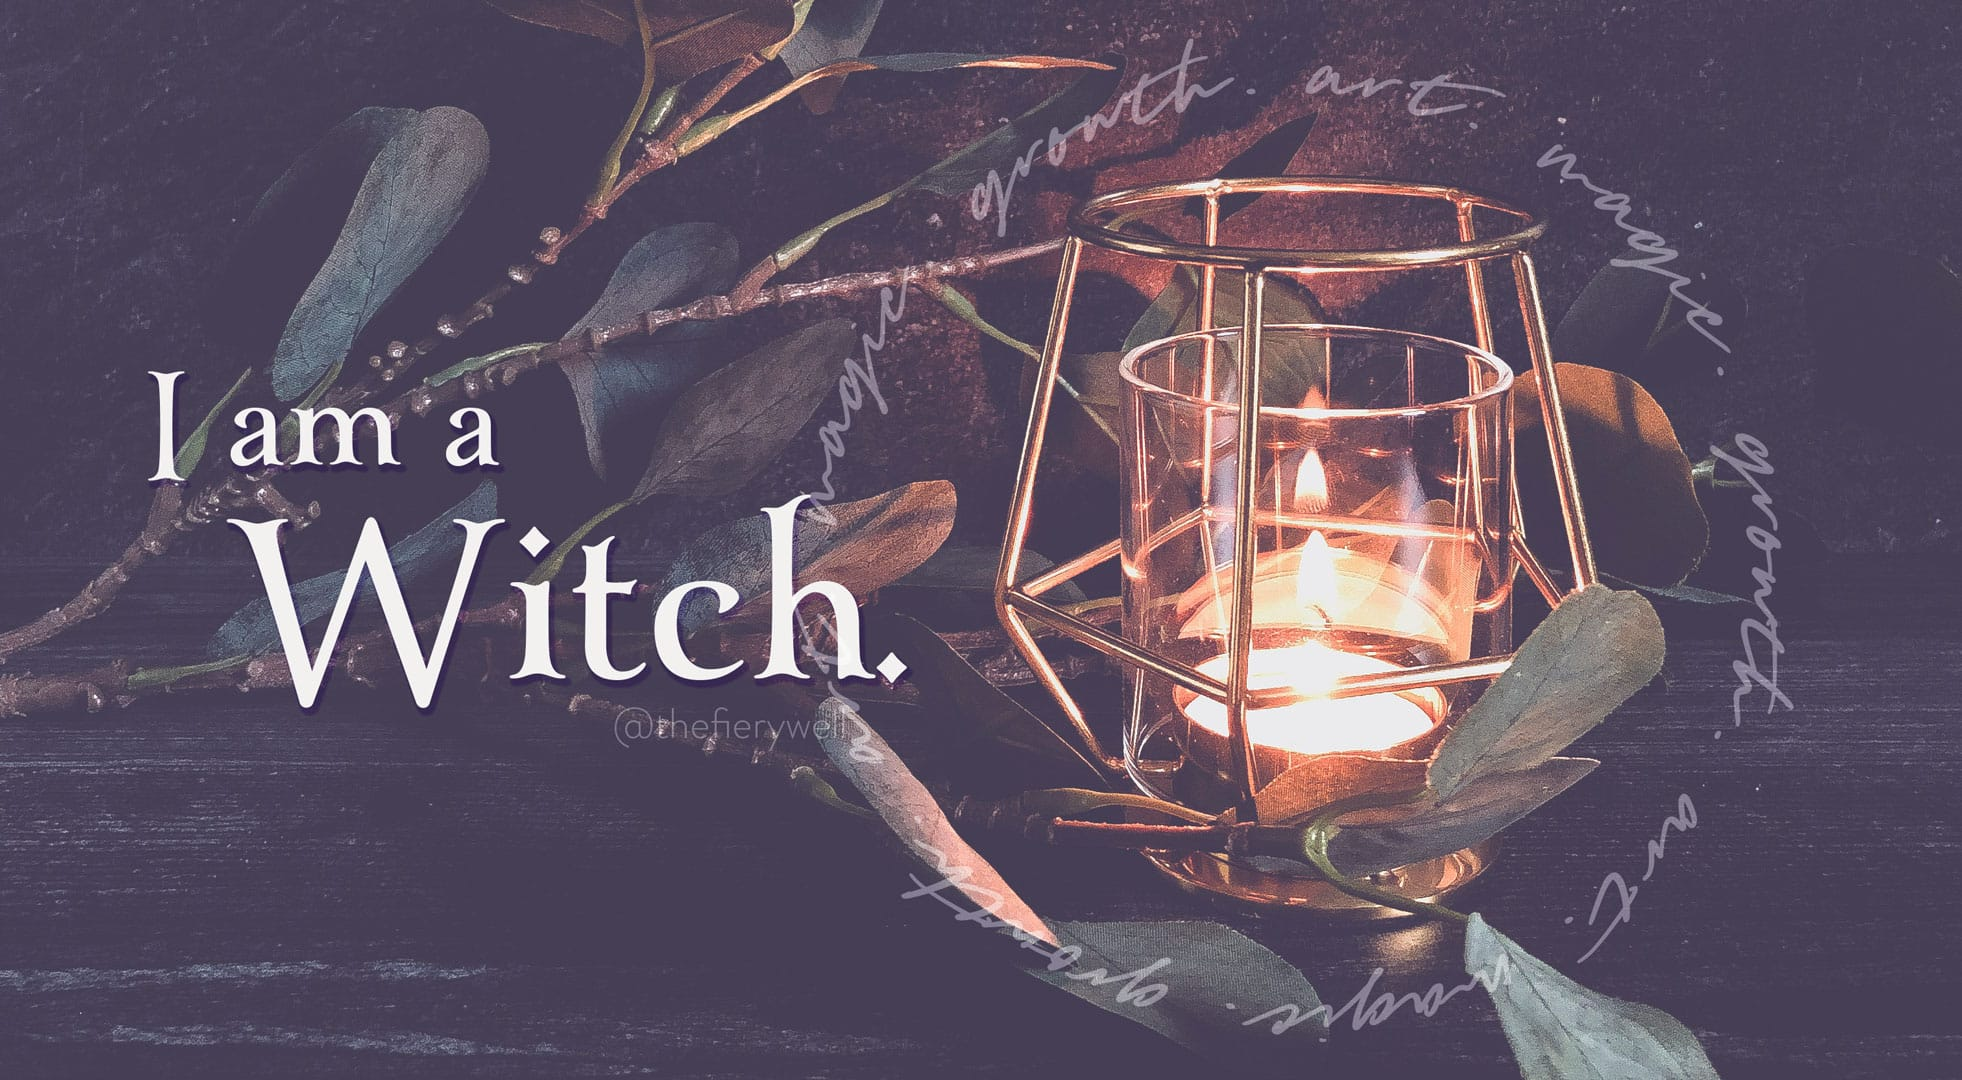 I am a witch.